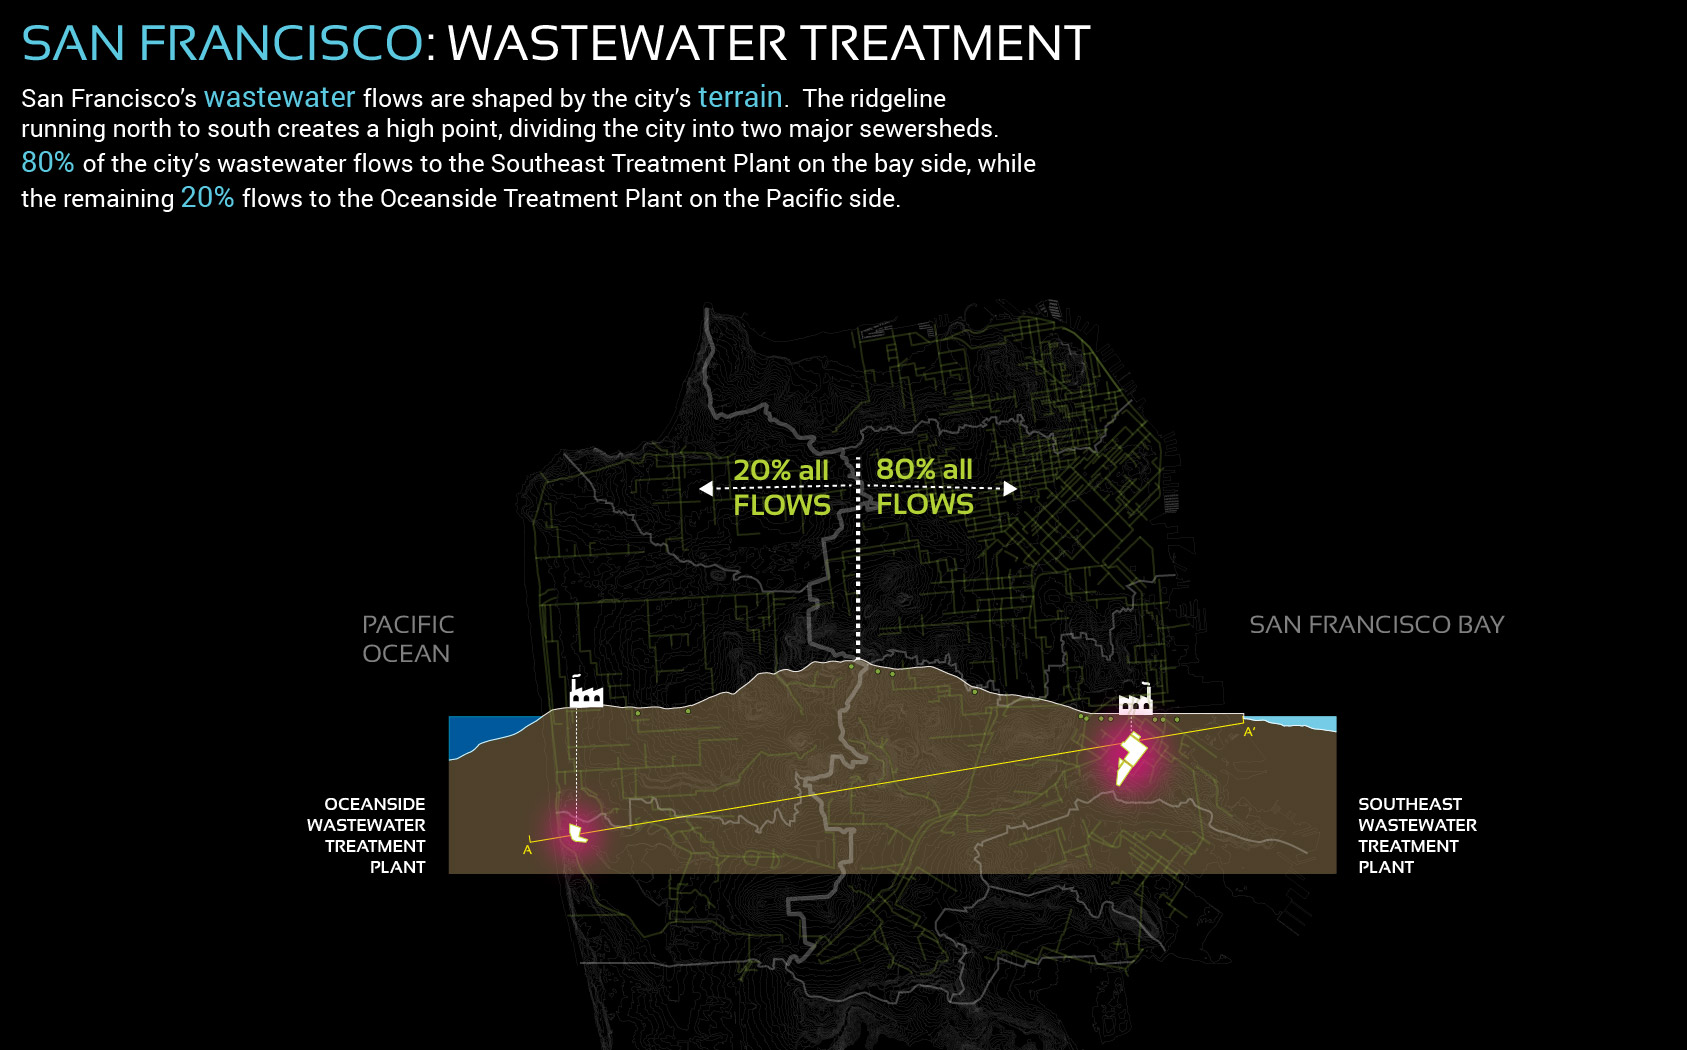 Figure 7. San Francisco's famous hills and ridge lines determine where wastewater is treated